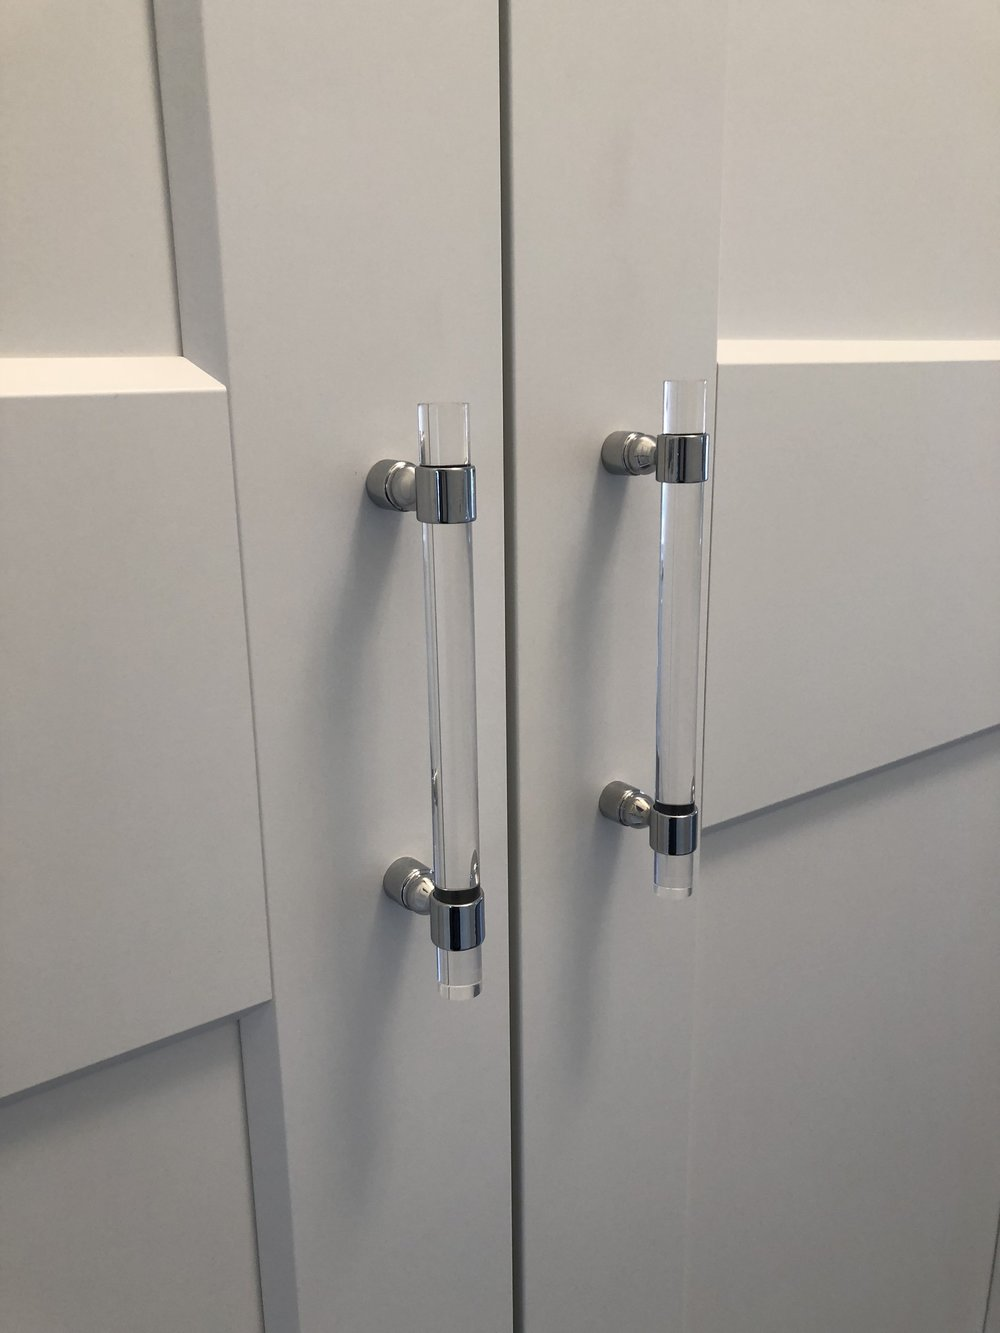 These acrylic handles offer clean lines and glamour to the closets.